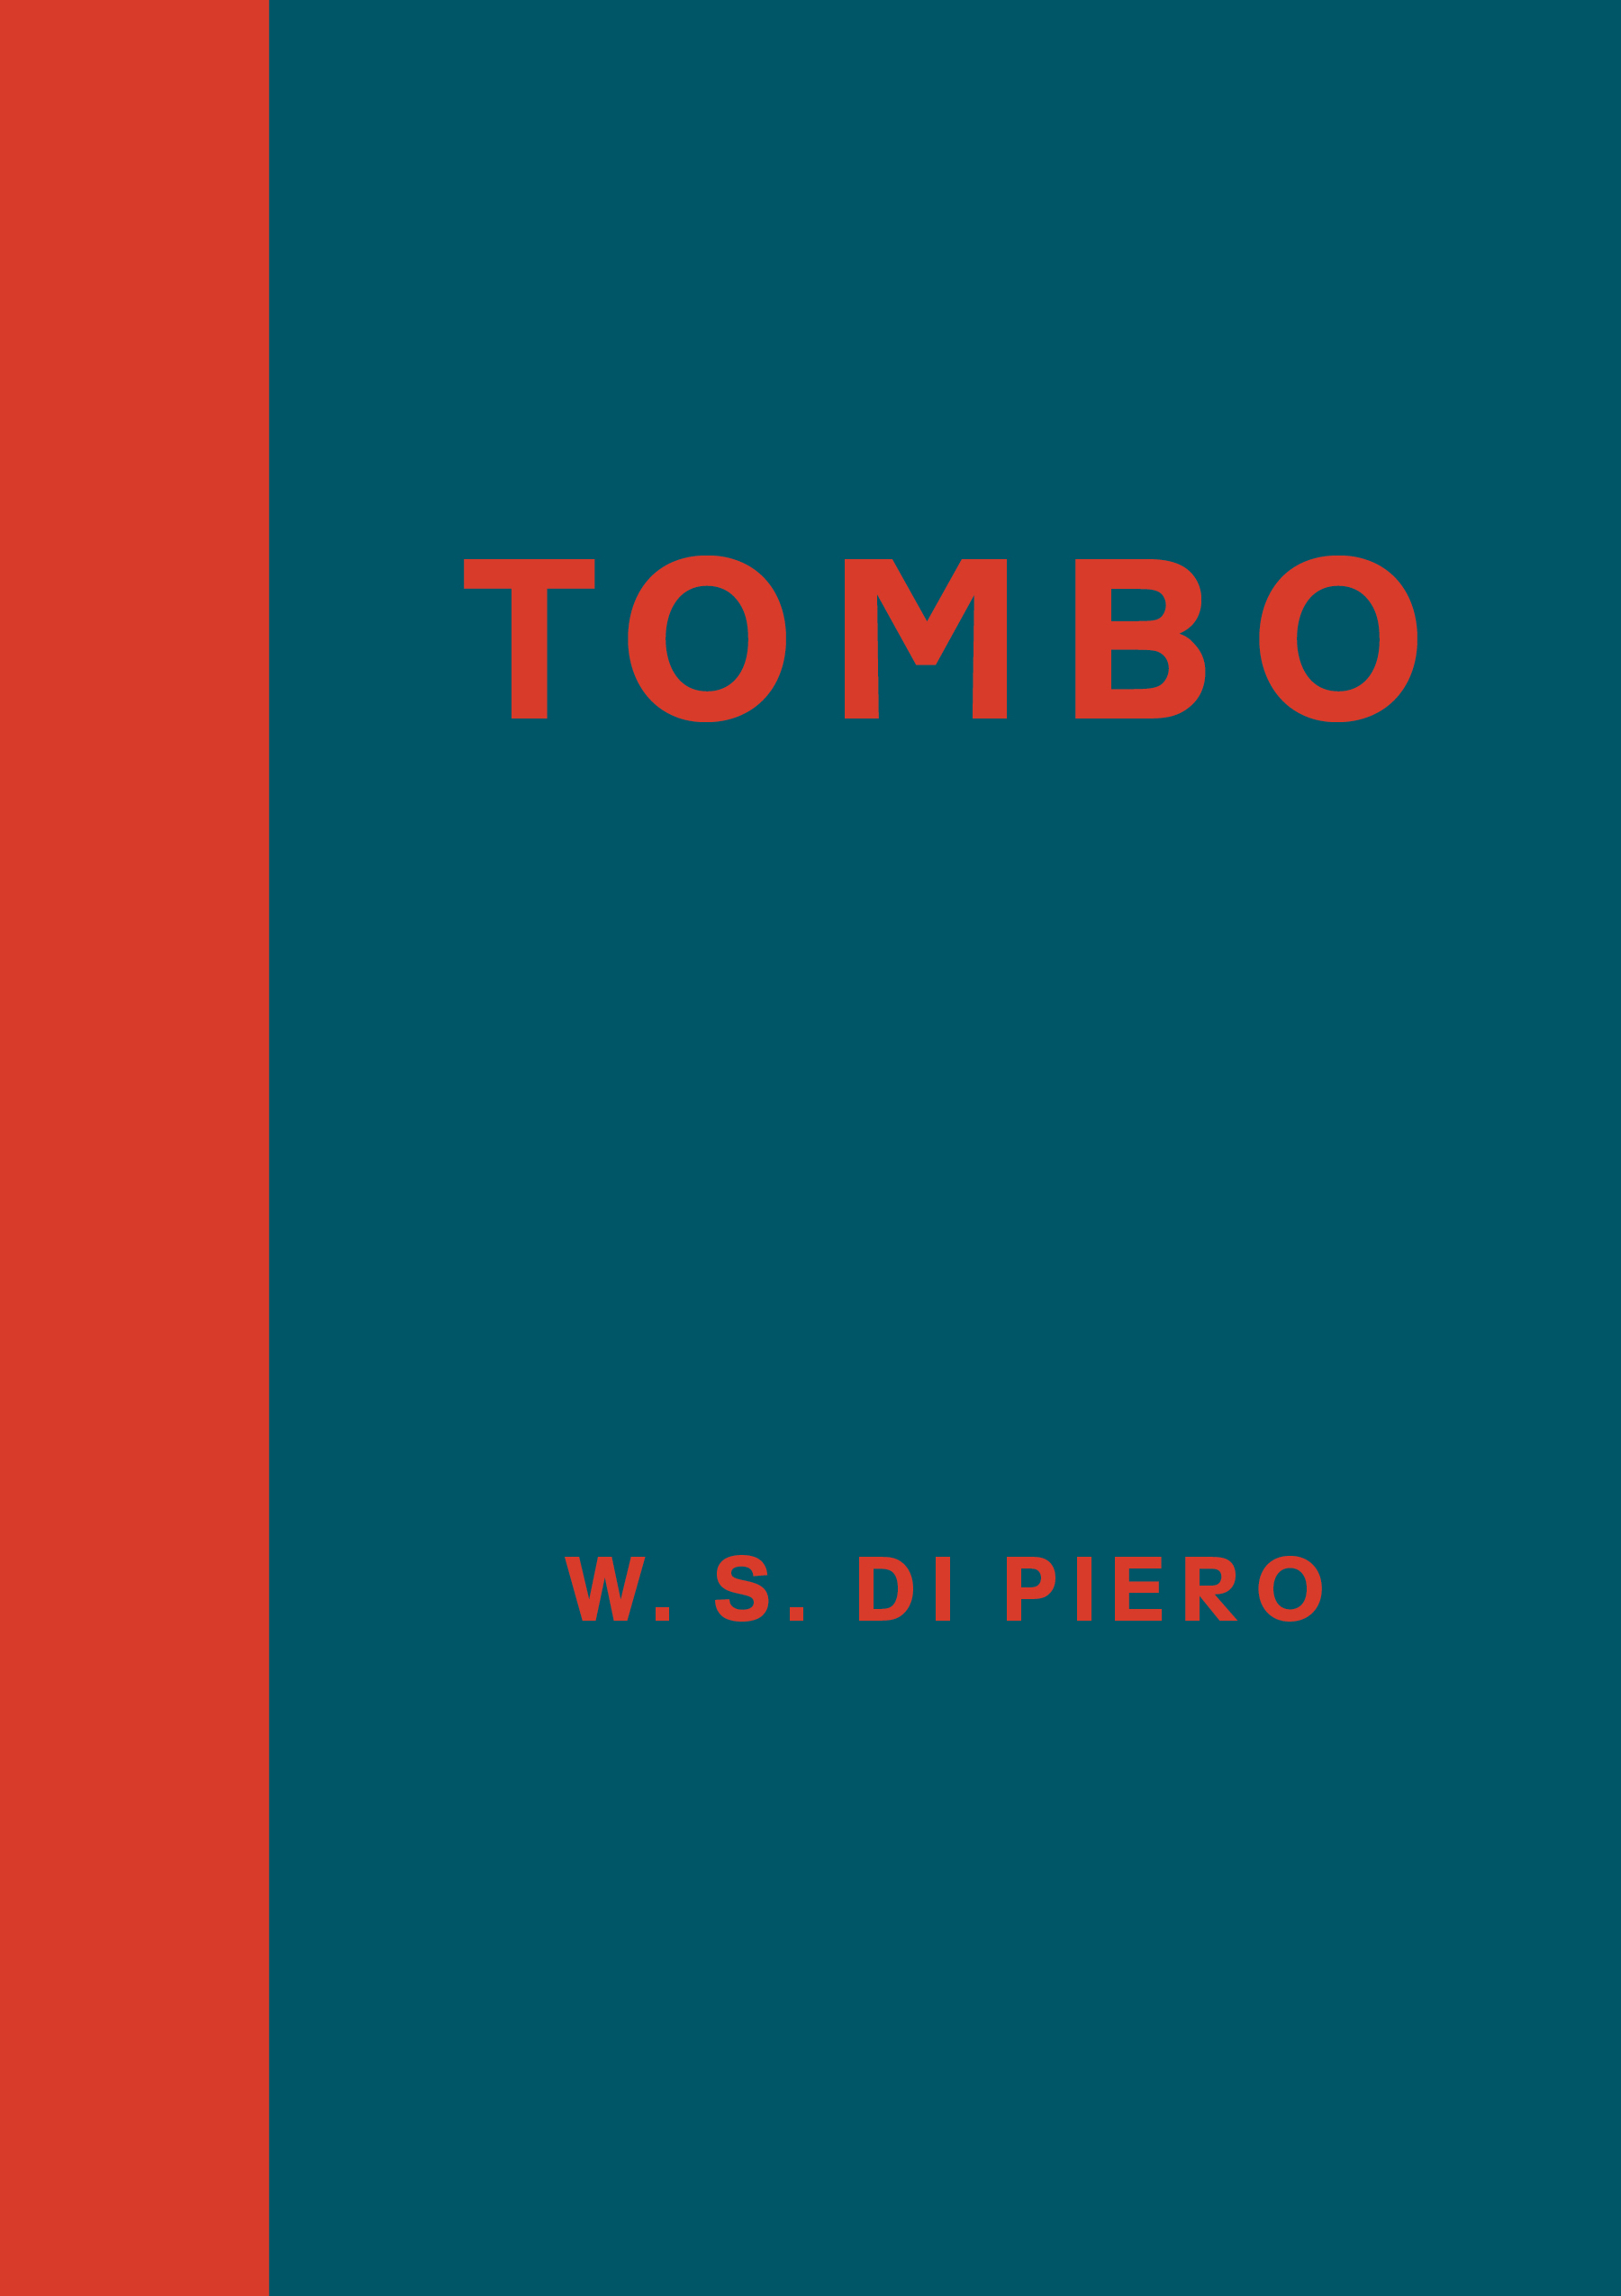 Tombo by W. S. Di Piero